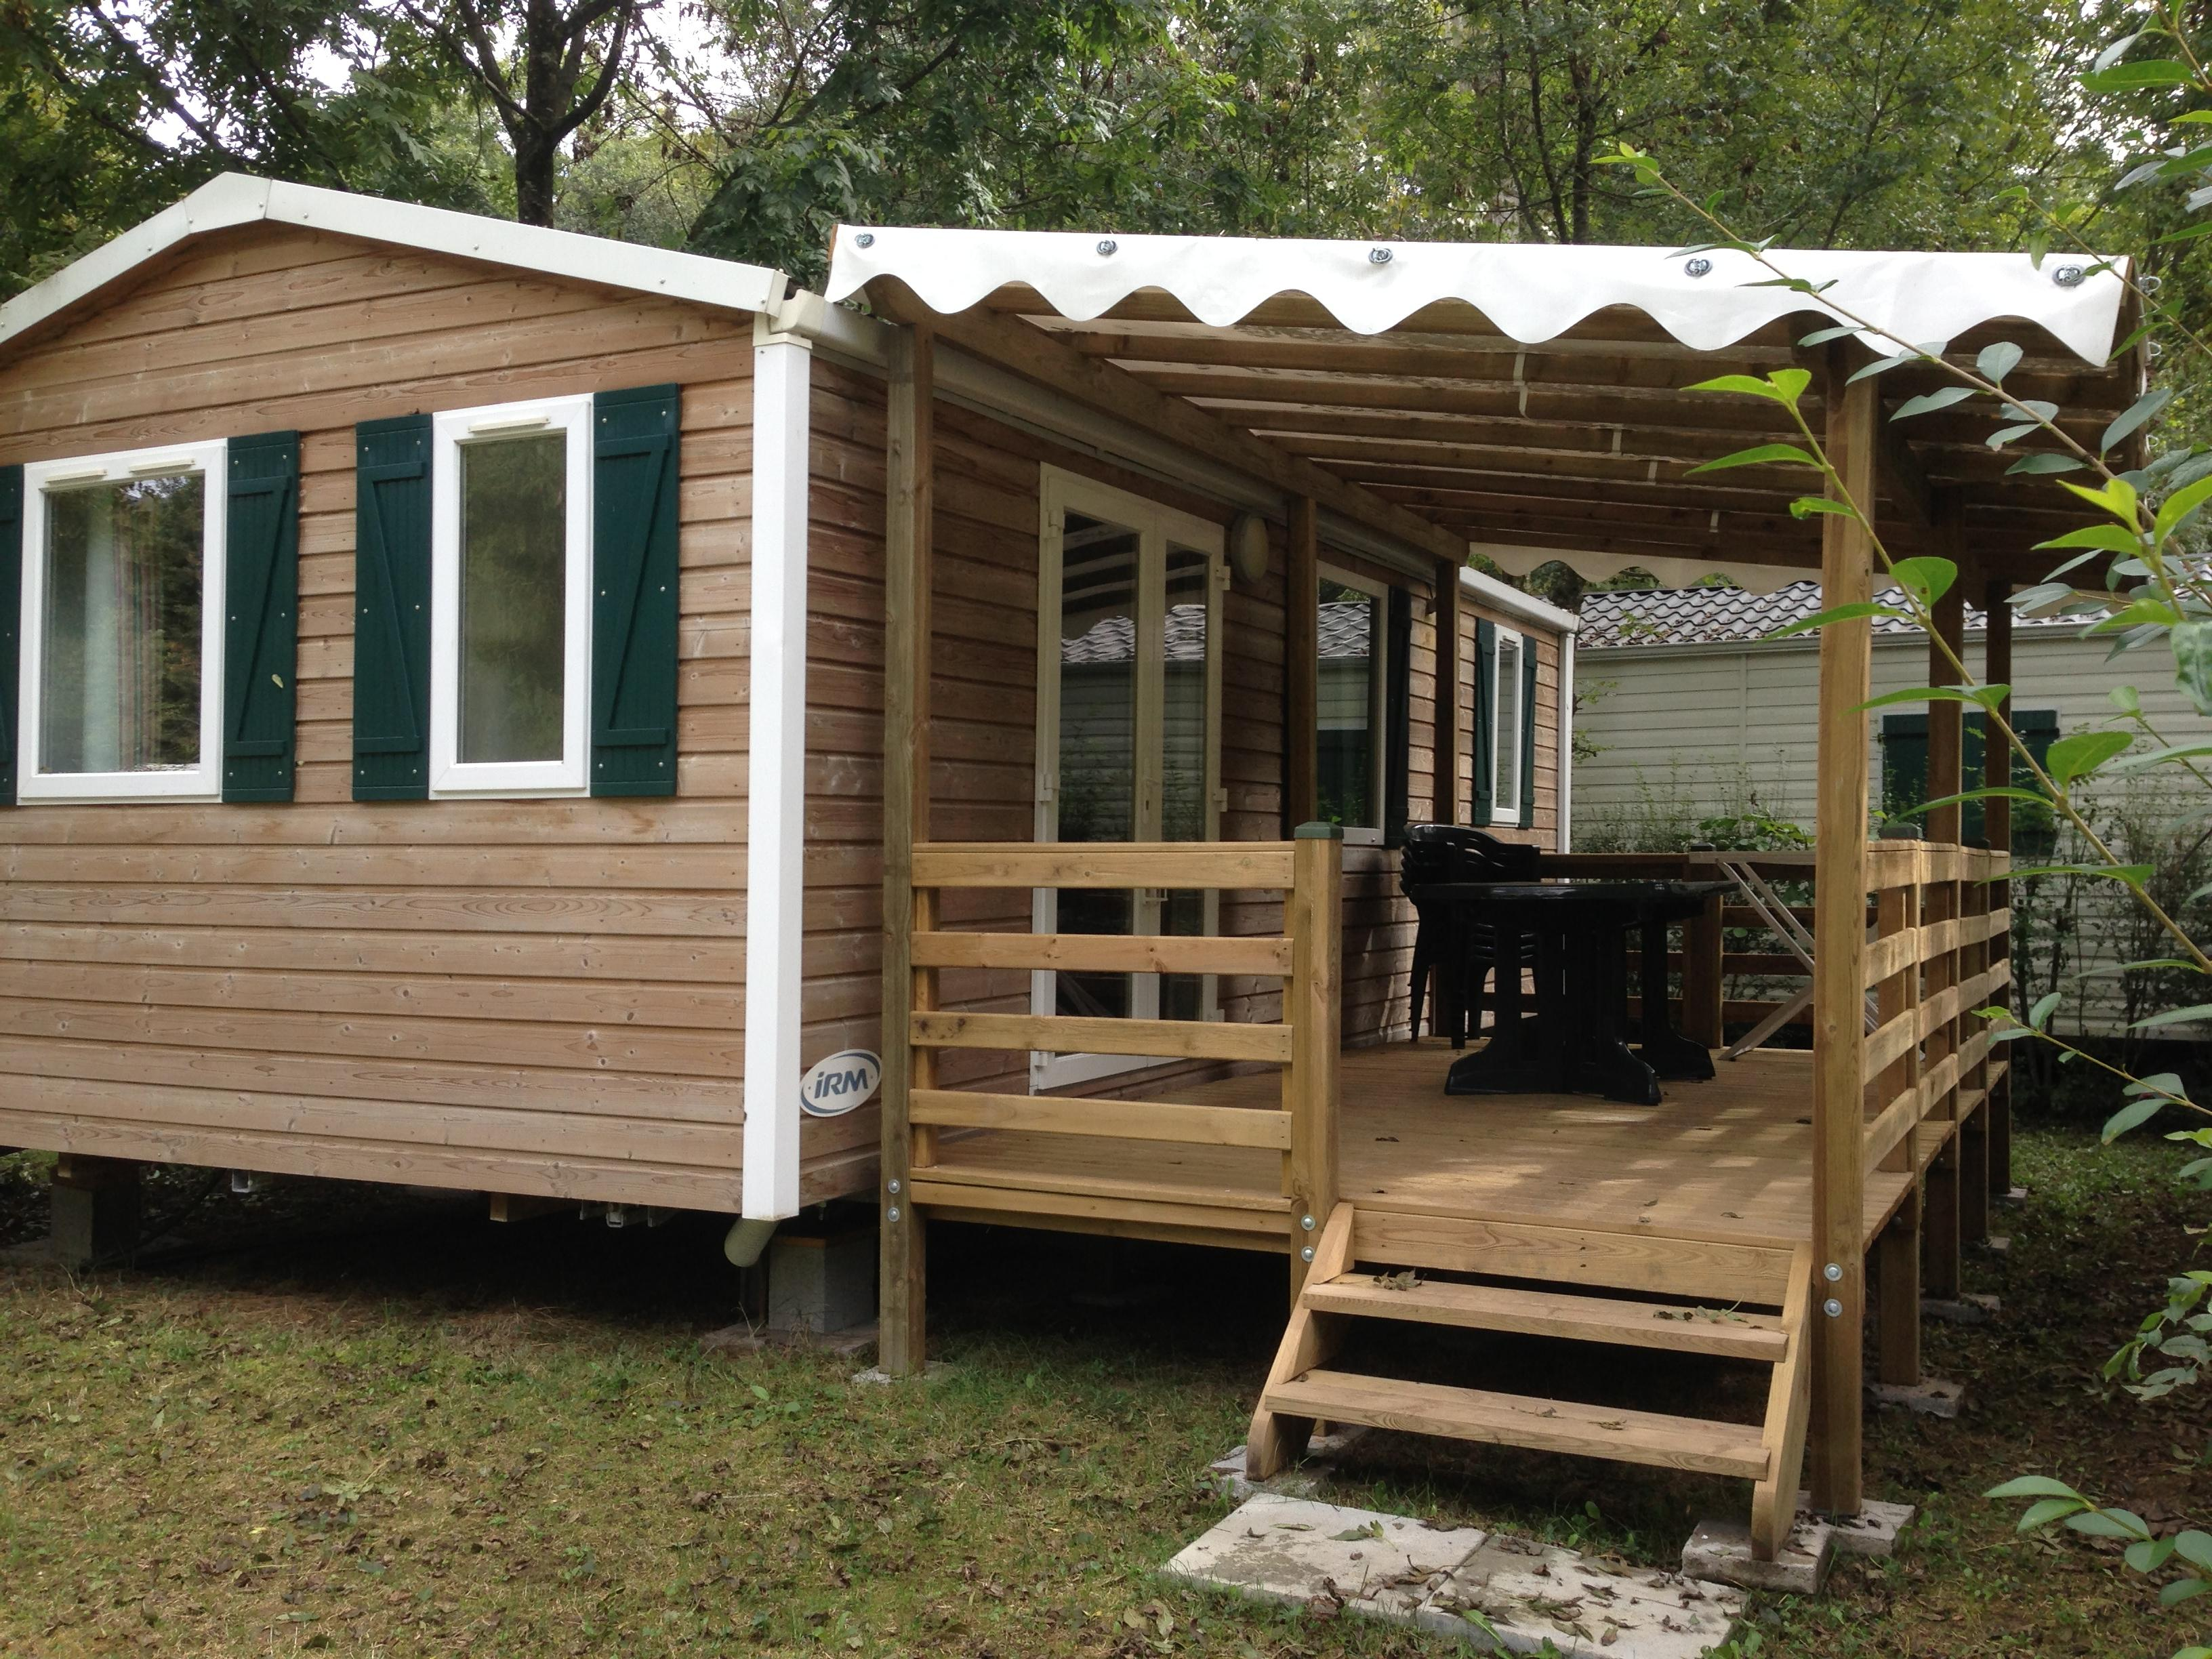 Mobil-home Titania  (29.70 m2) - 2 chambres - Année 2011